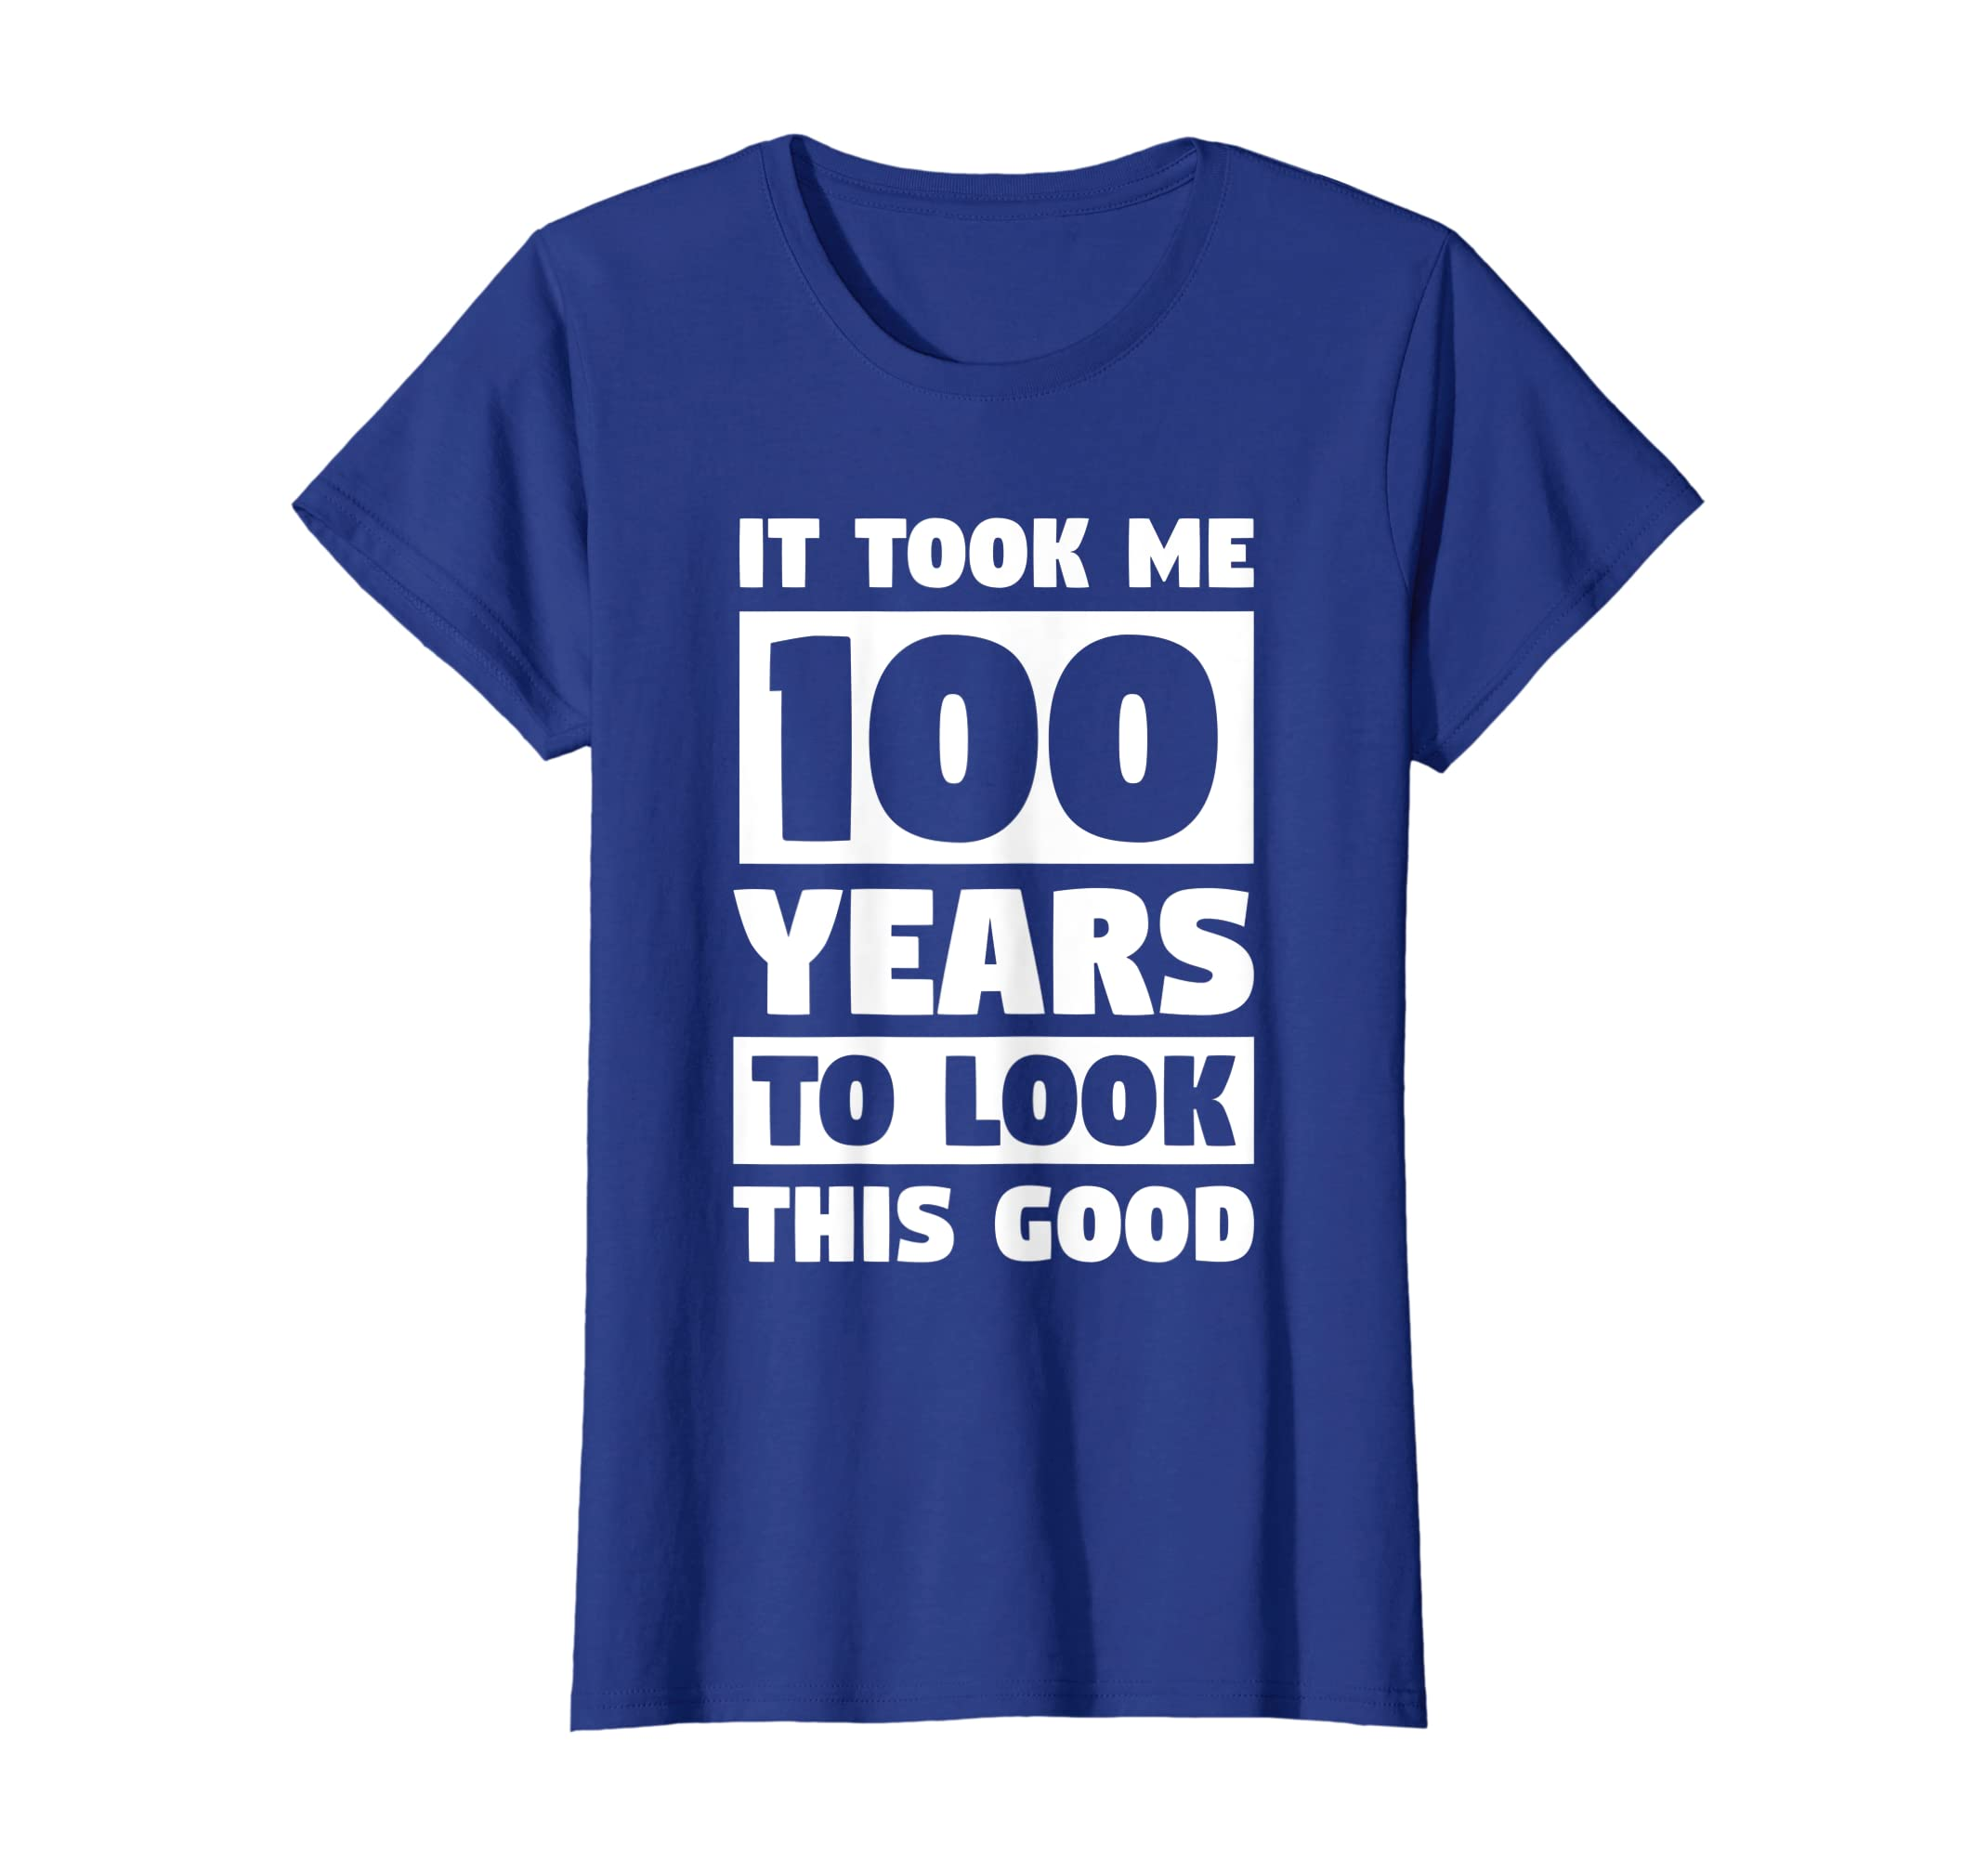 Amazon Took 100 Years To Look This Good Funny 100th Birthday Shirt Clothing